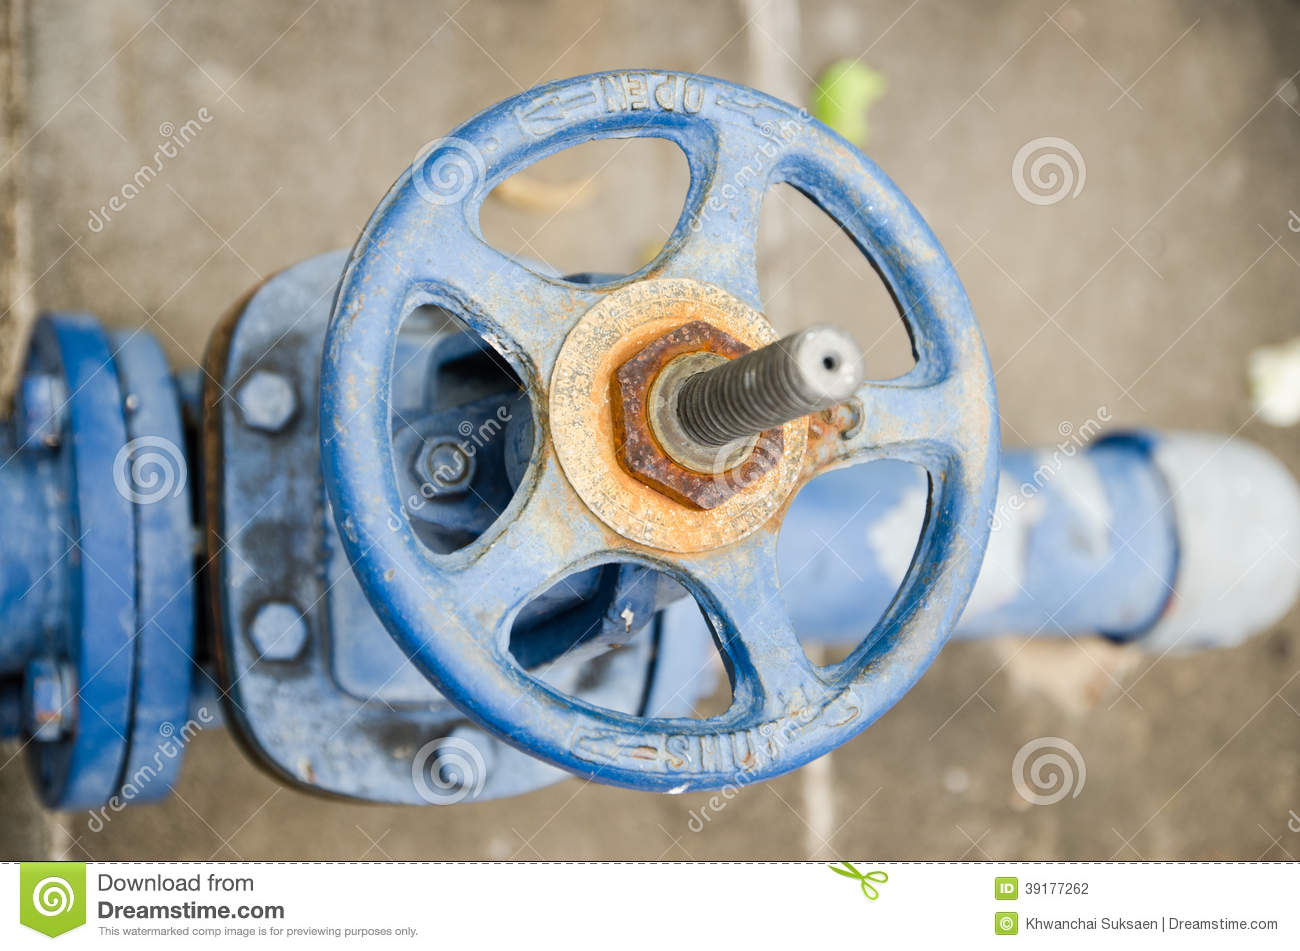 Old Rusty Industrial Tap Water Pipe And Valve Stock Photo